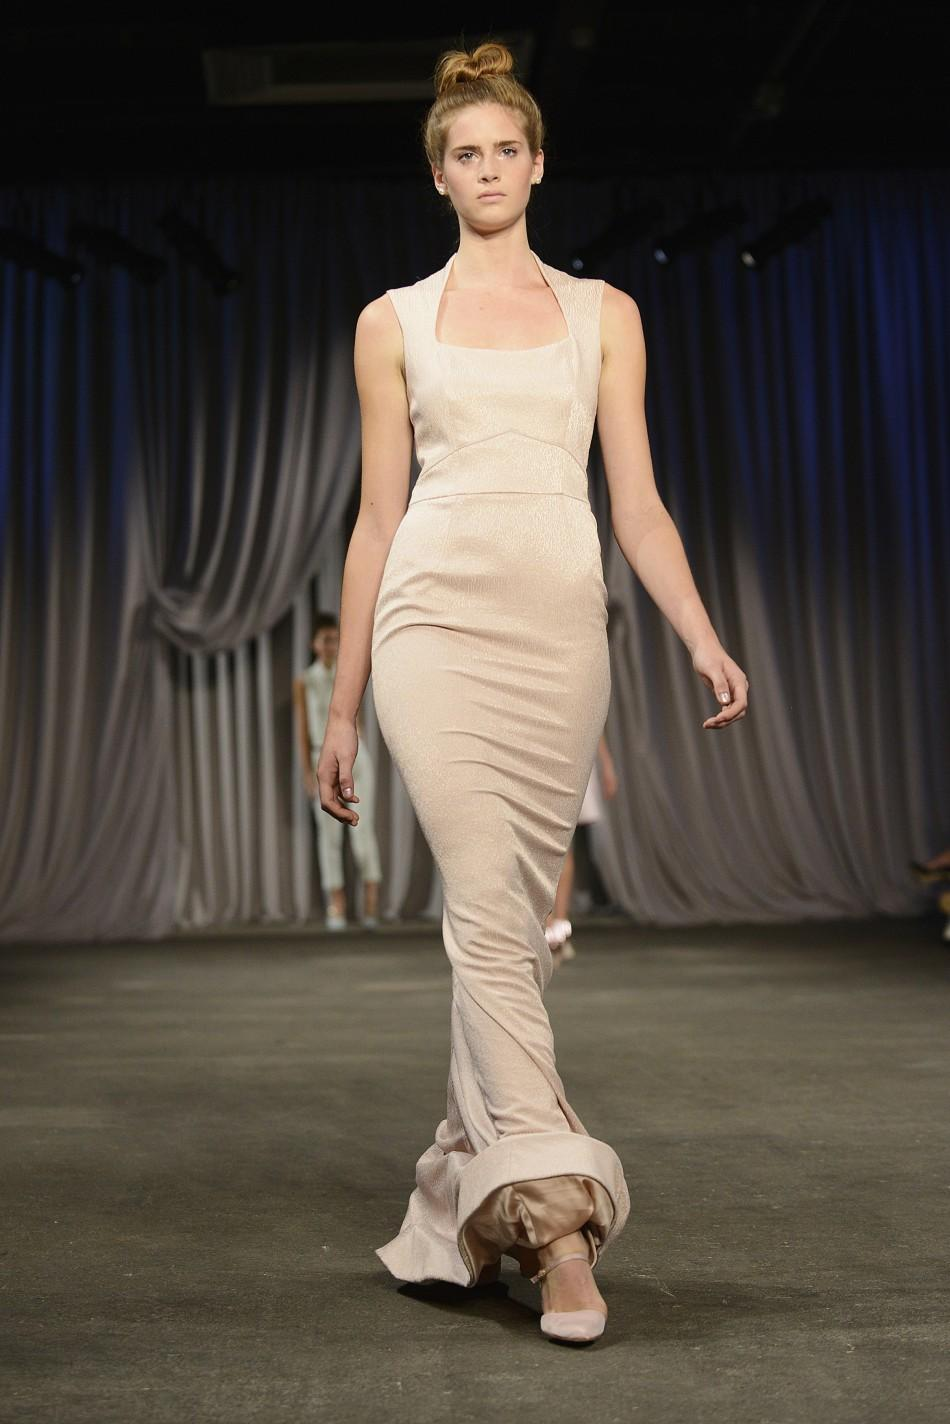 The Christian Siriano Spring 2013 collection at New York Fashion Week, Sept. 8, 2012